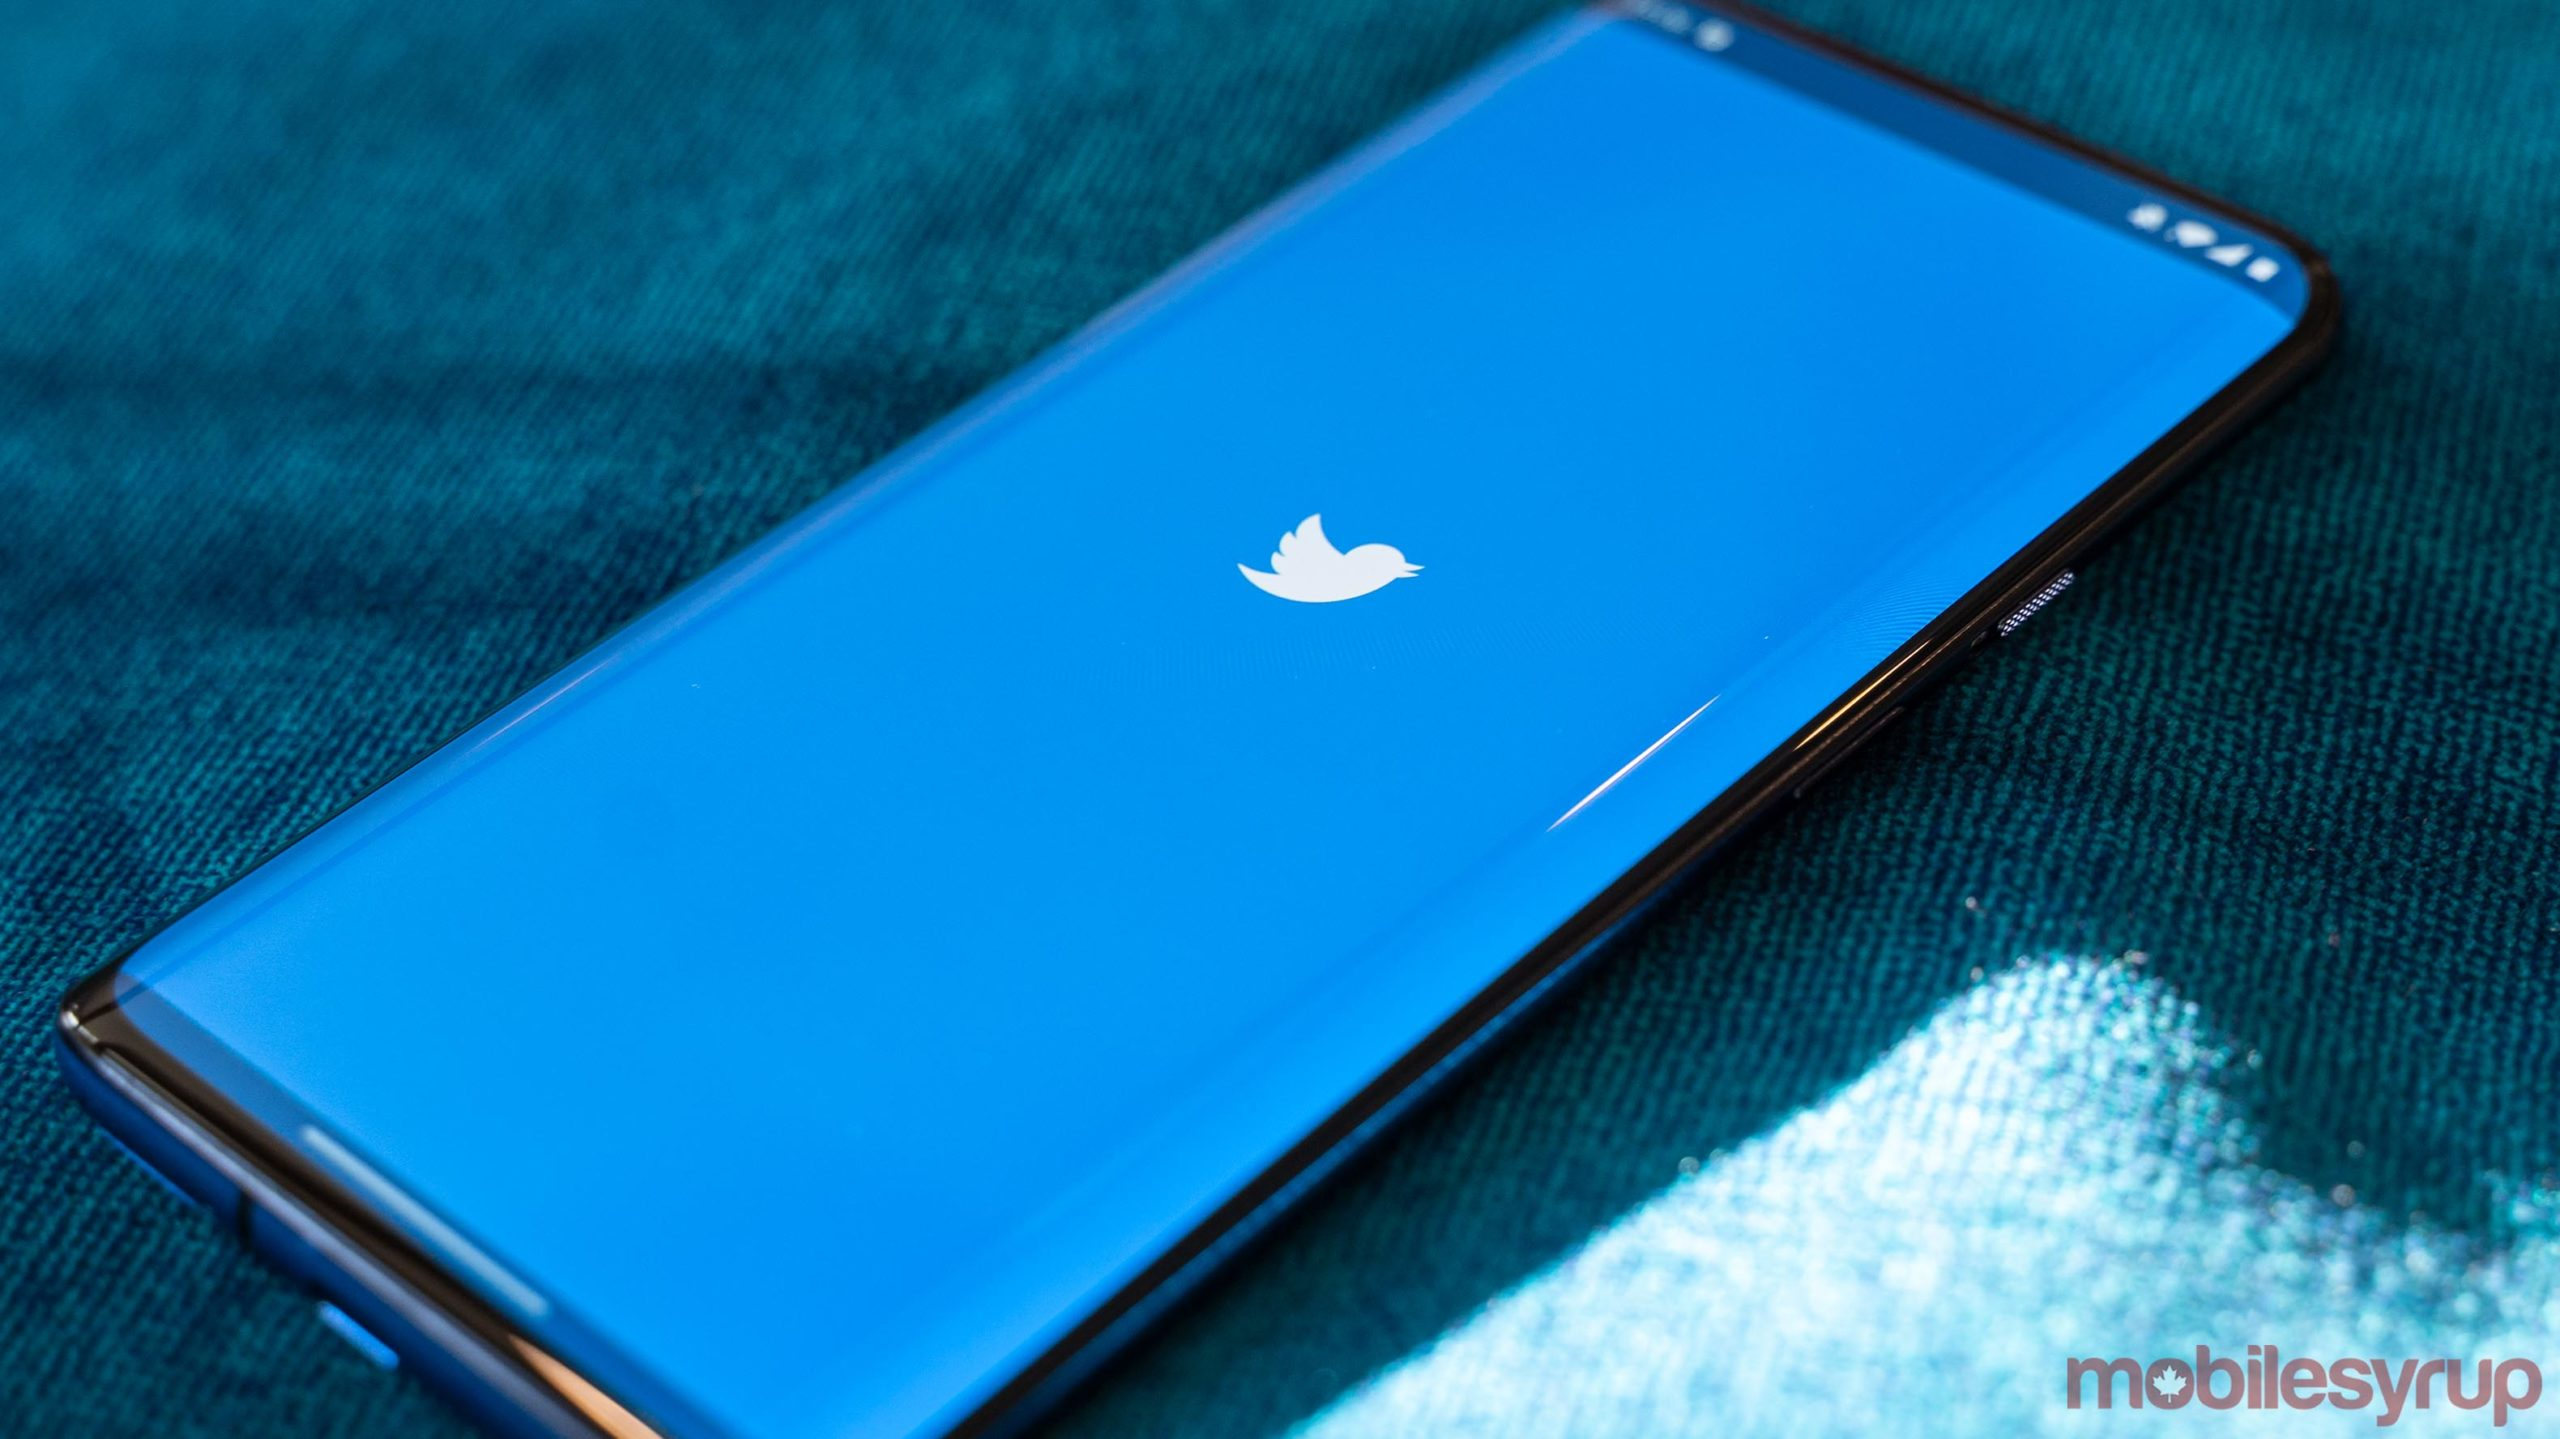 Twitter logo on a phone